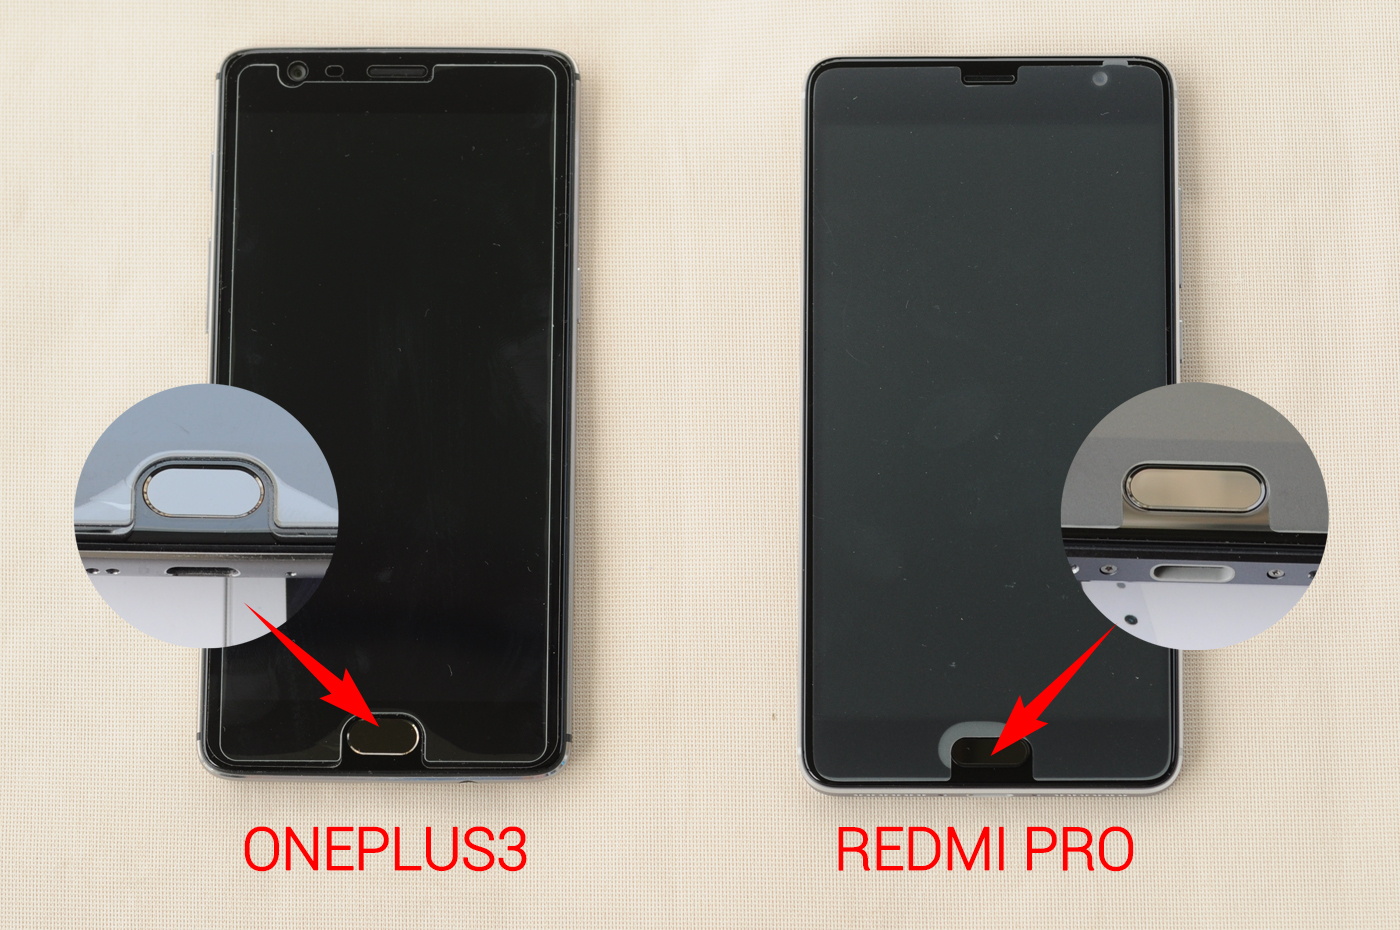 To2ccom Blog Oneplus 3 Vs Xiaomi Redmi Pro Which One You Like 3s 32 Gb Rom Global Gold Front Camera Is In Left Right